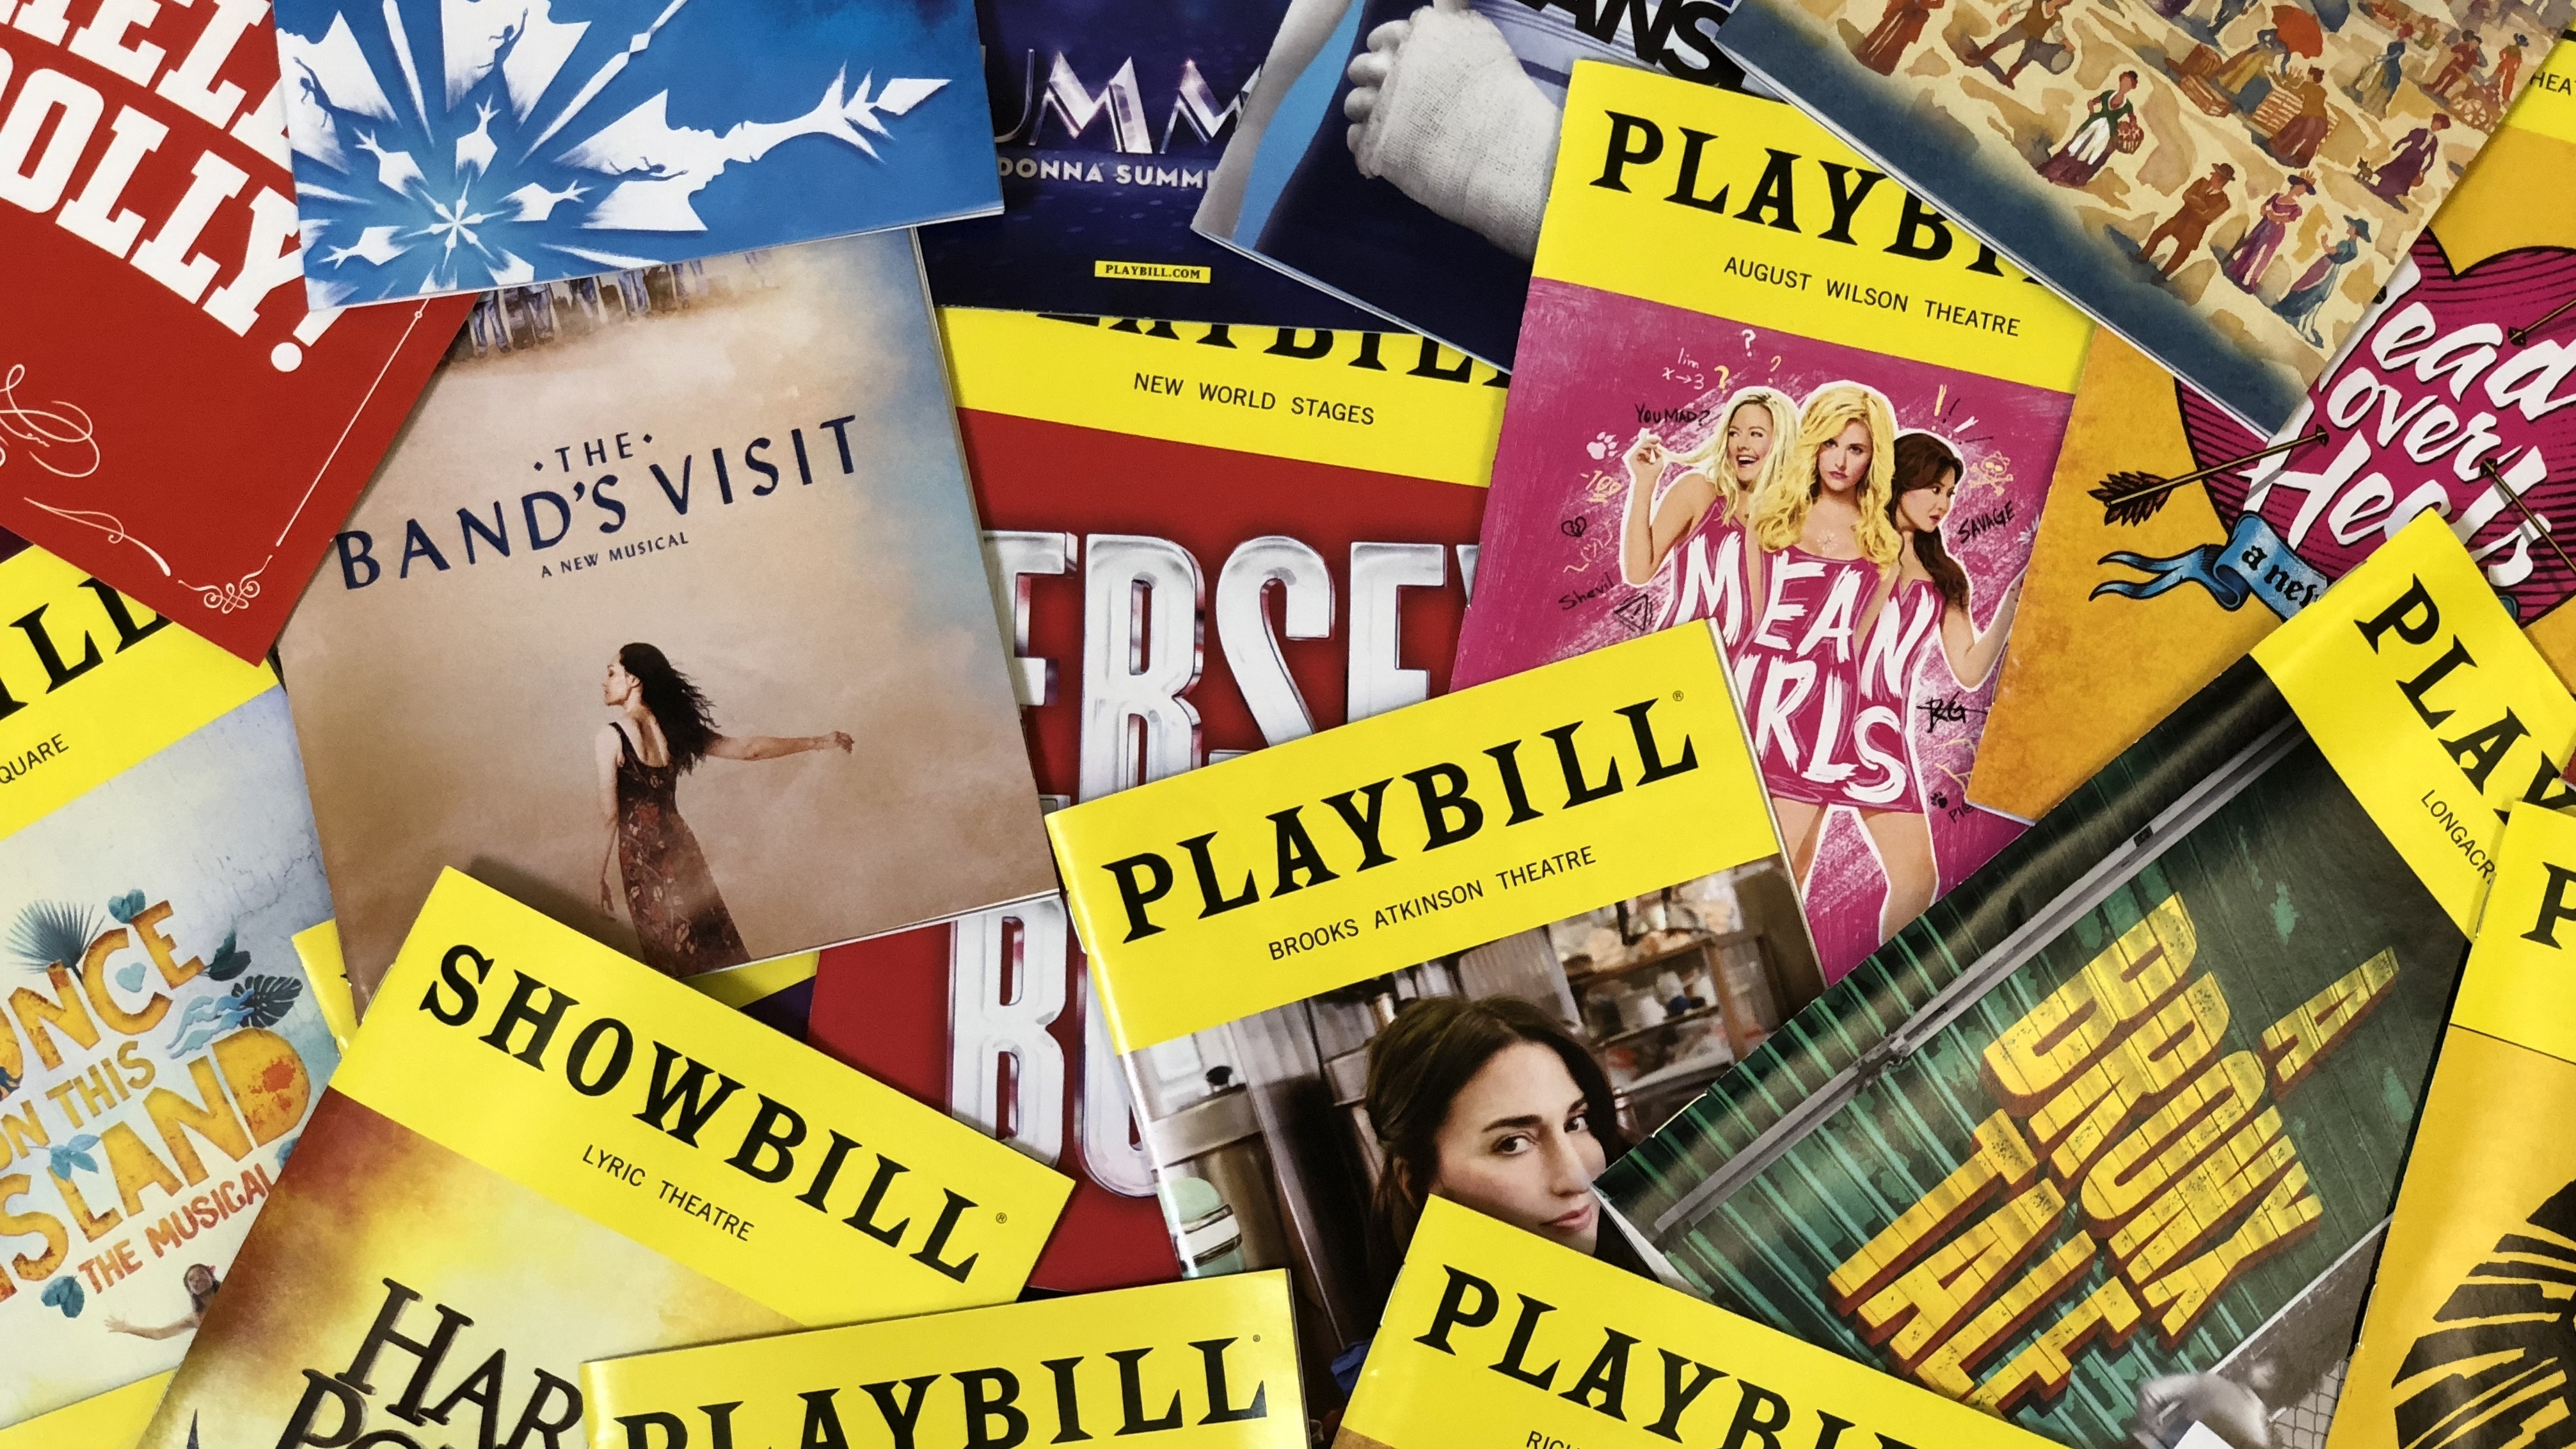 """With theaters across the country closed due to the COVID-19 pandemic, Playbill has had to pivot quickly. """"We find ourselves incredibly fortunate to be associated with this ridiculously fantastic art form that we miss oh, so much,"""" says Playbill Vice President Alex Birsh."""